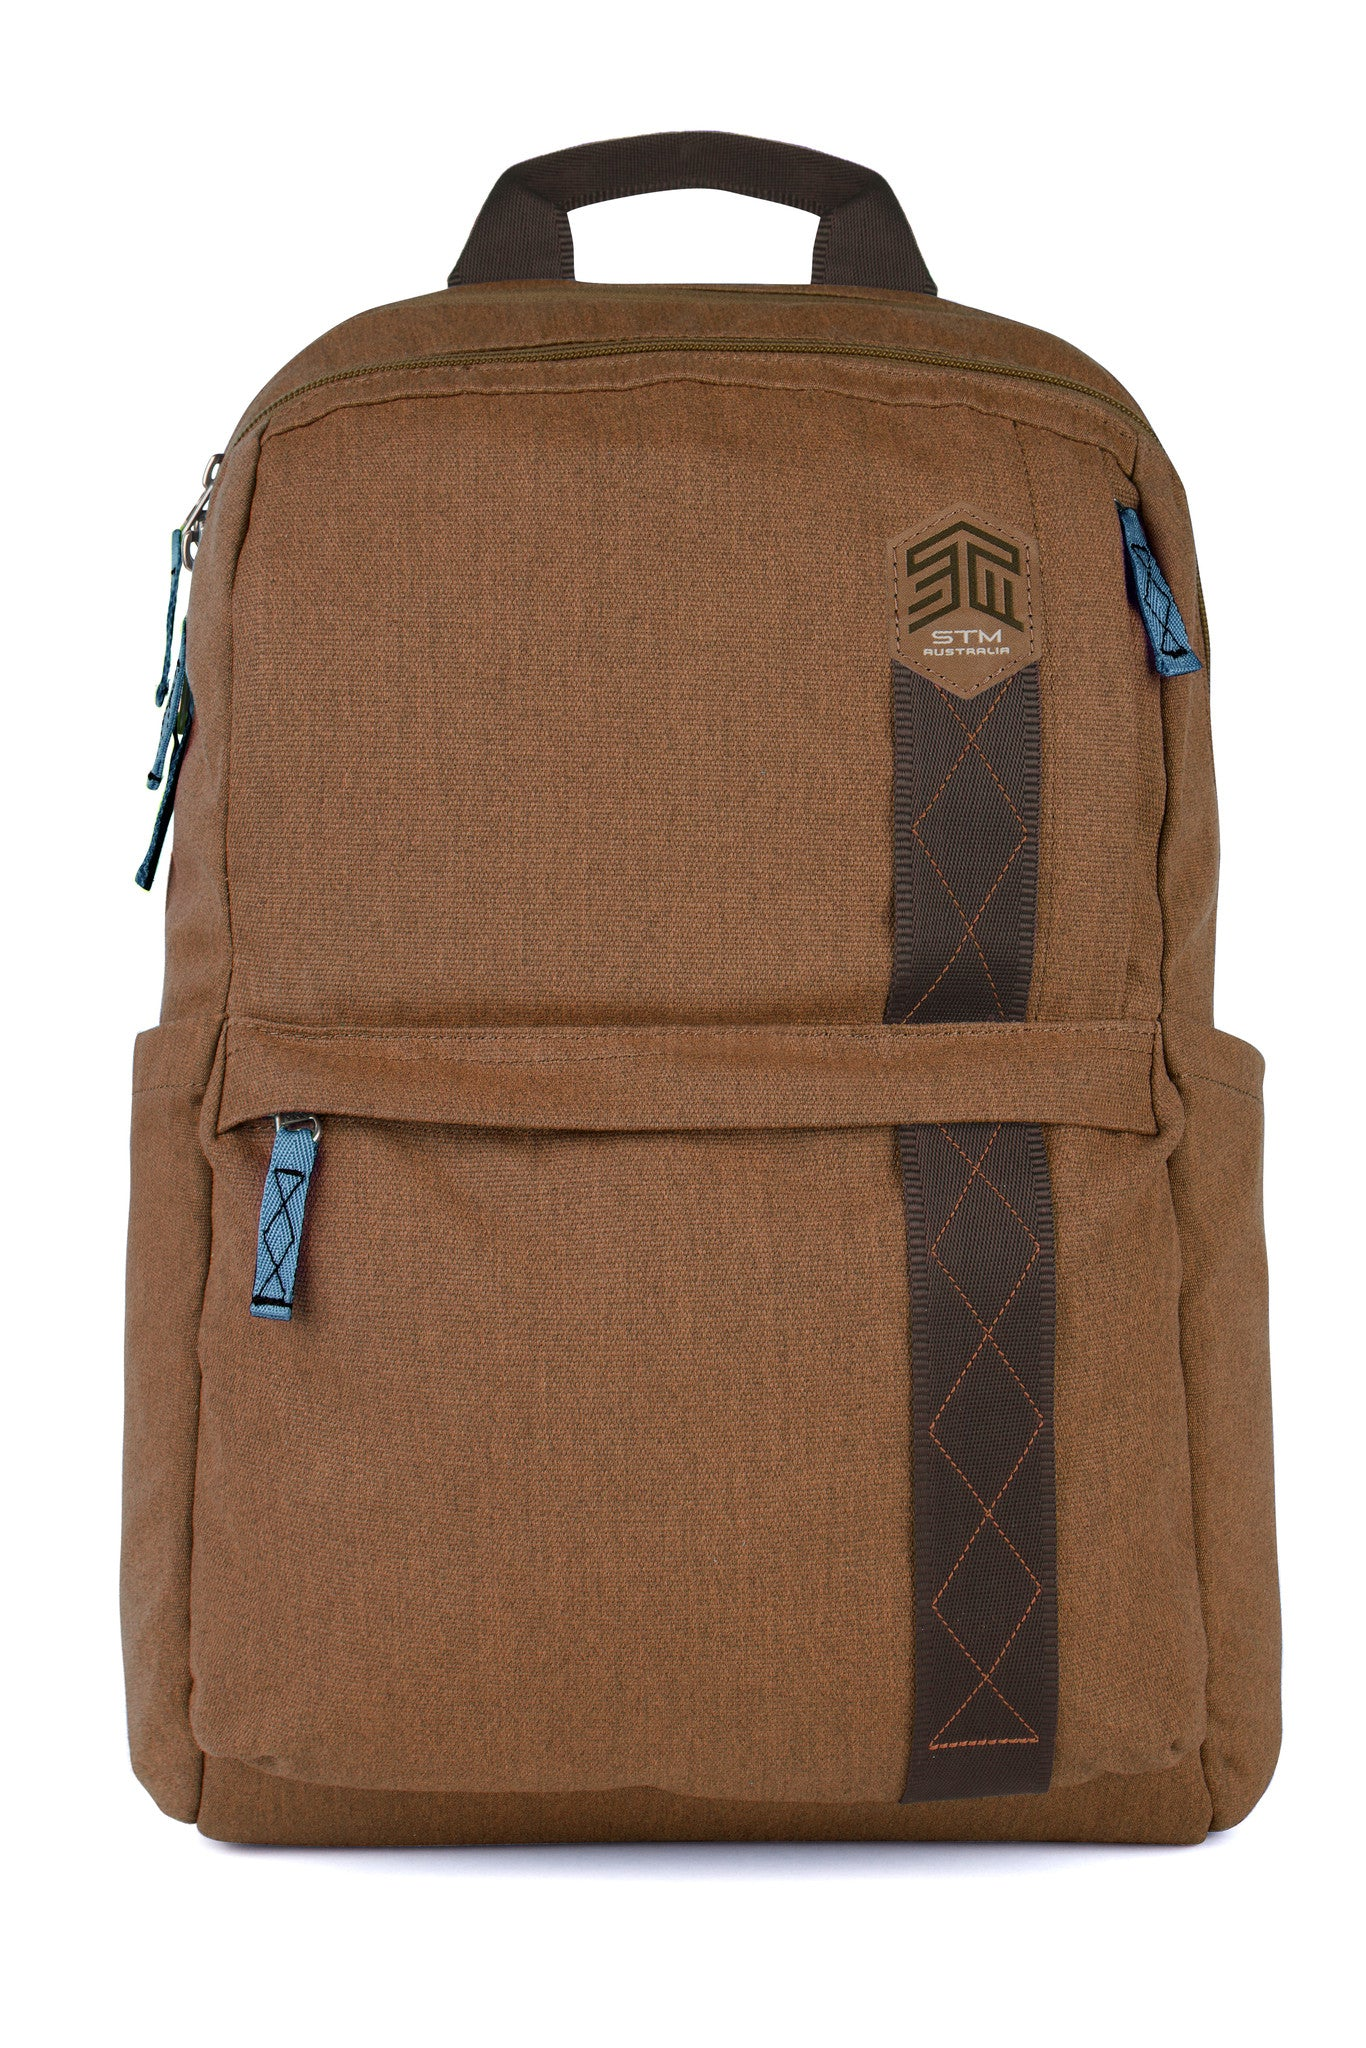 "STM BANKS BACKPACK 15""  - DESERT BROWN"